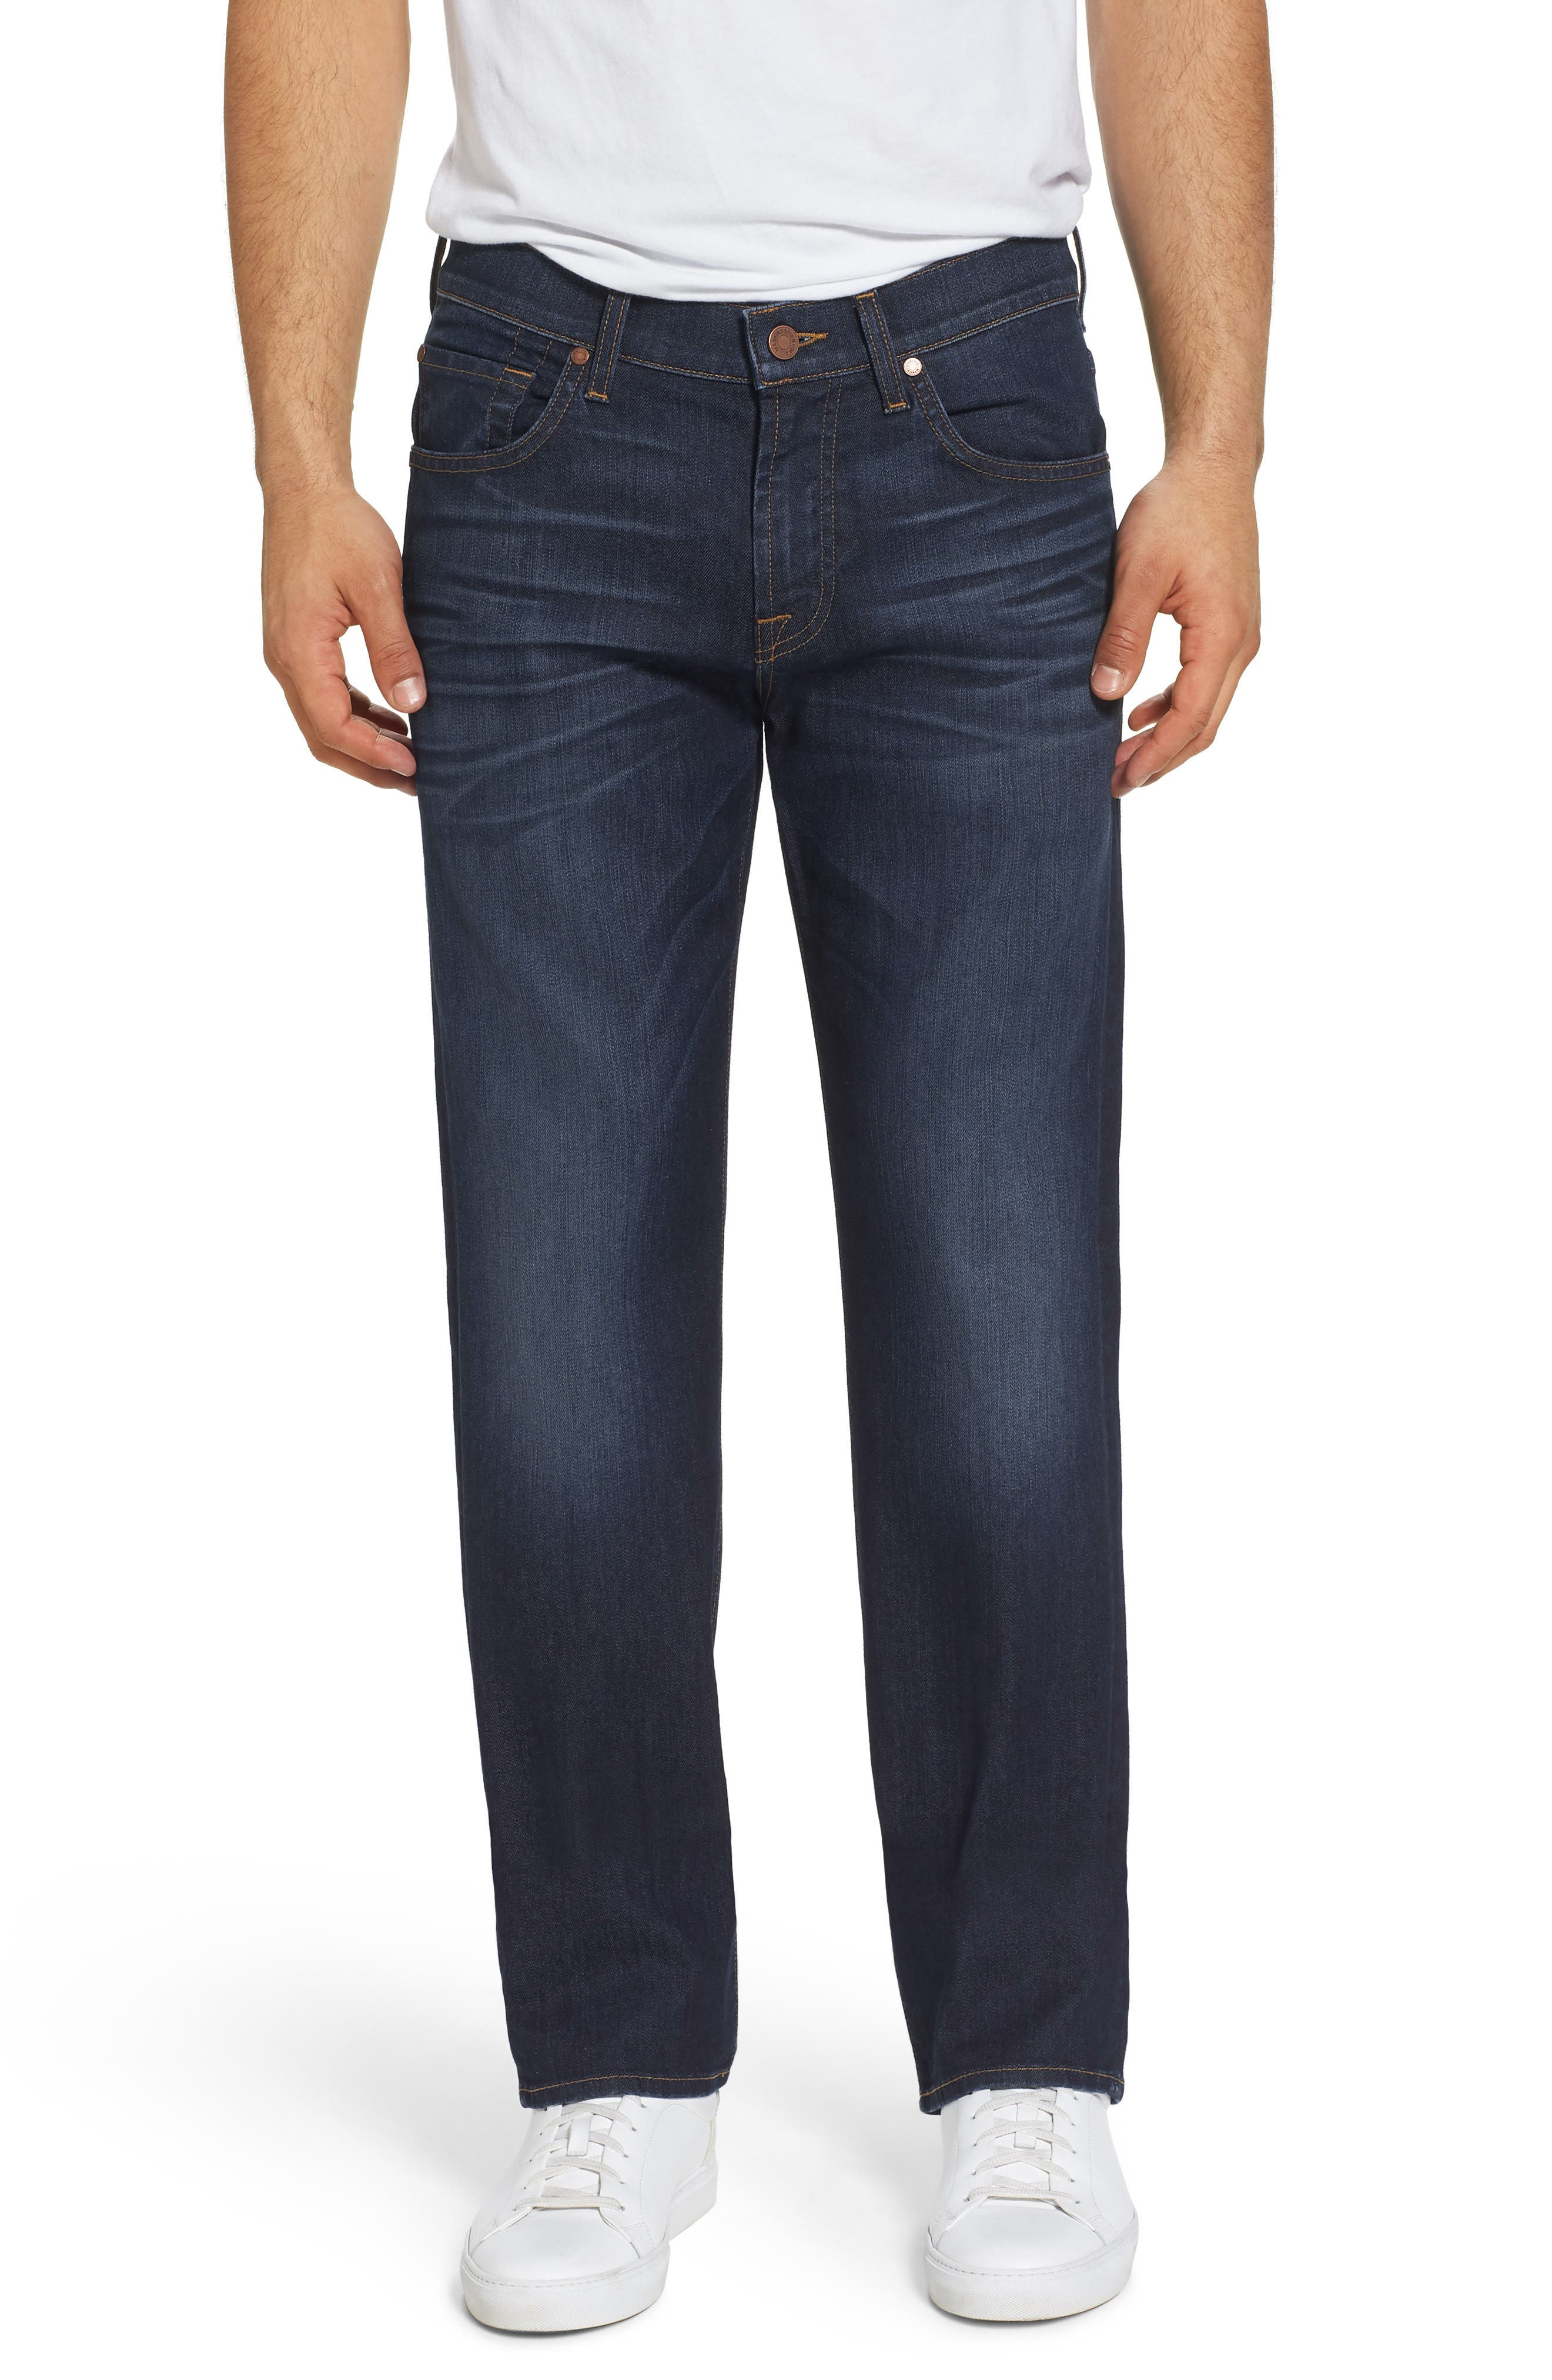 Airweft Austyn Relaxed Straight Leg Jeans,                         Main,                         color, 400